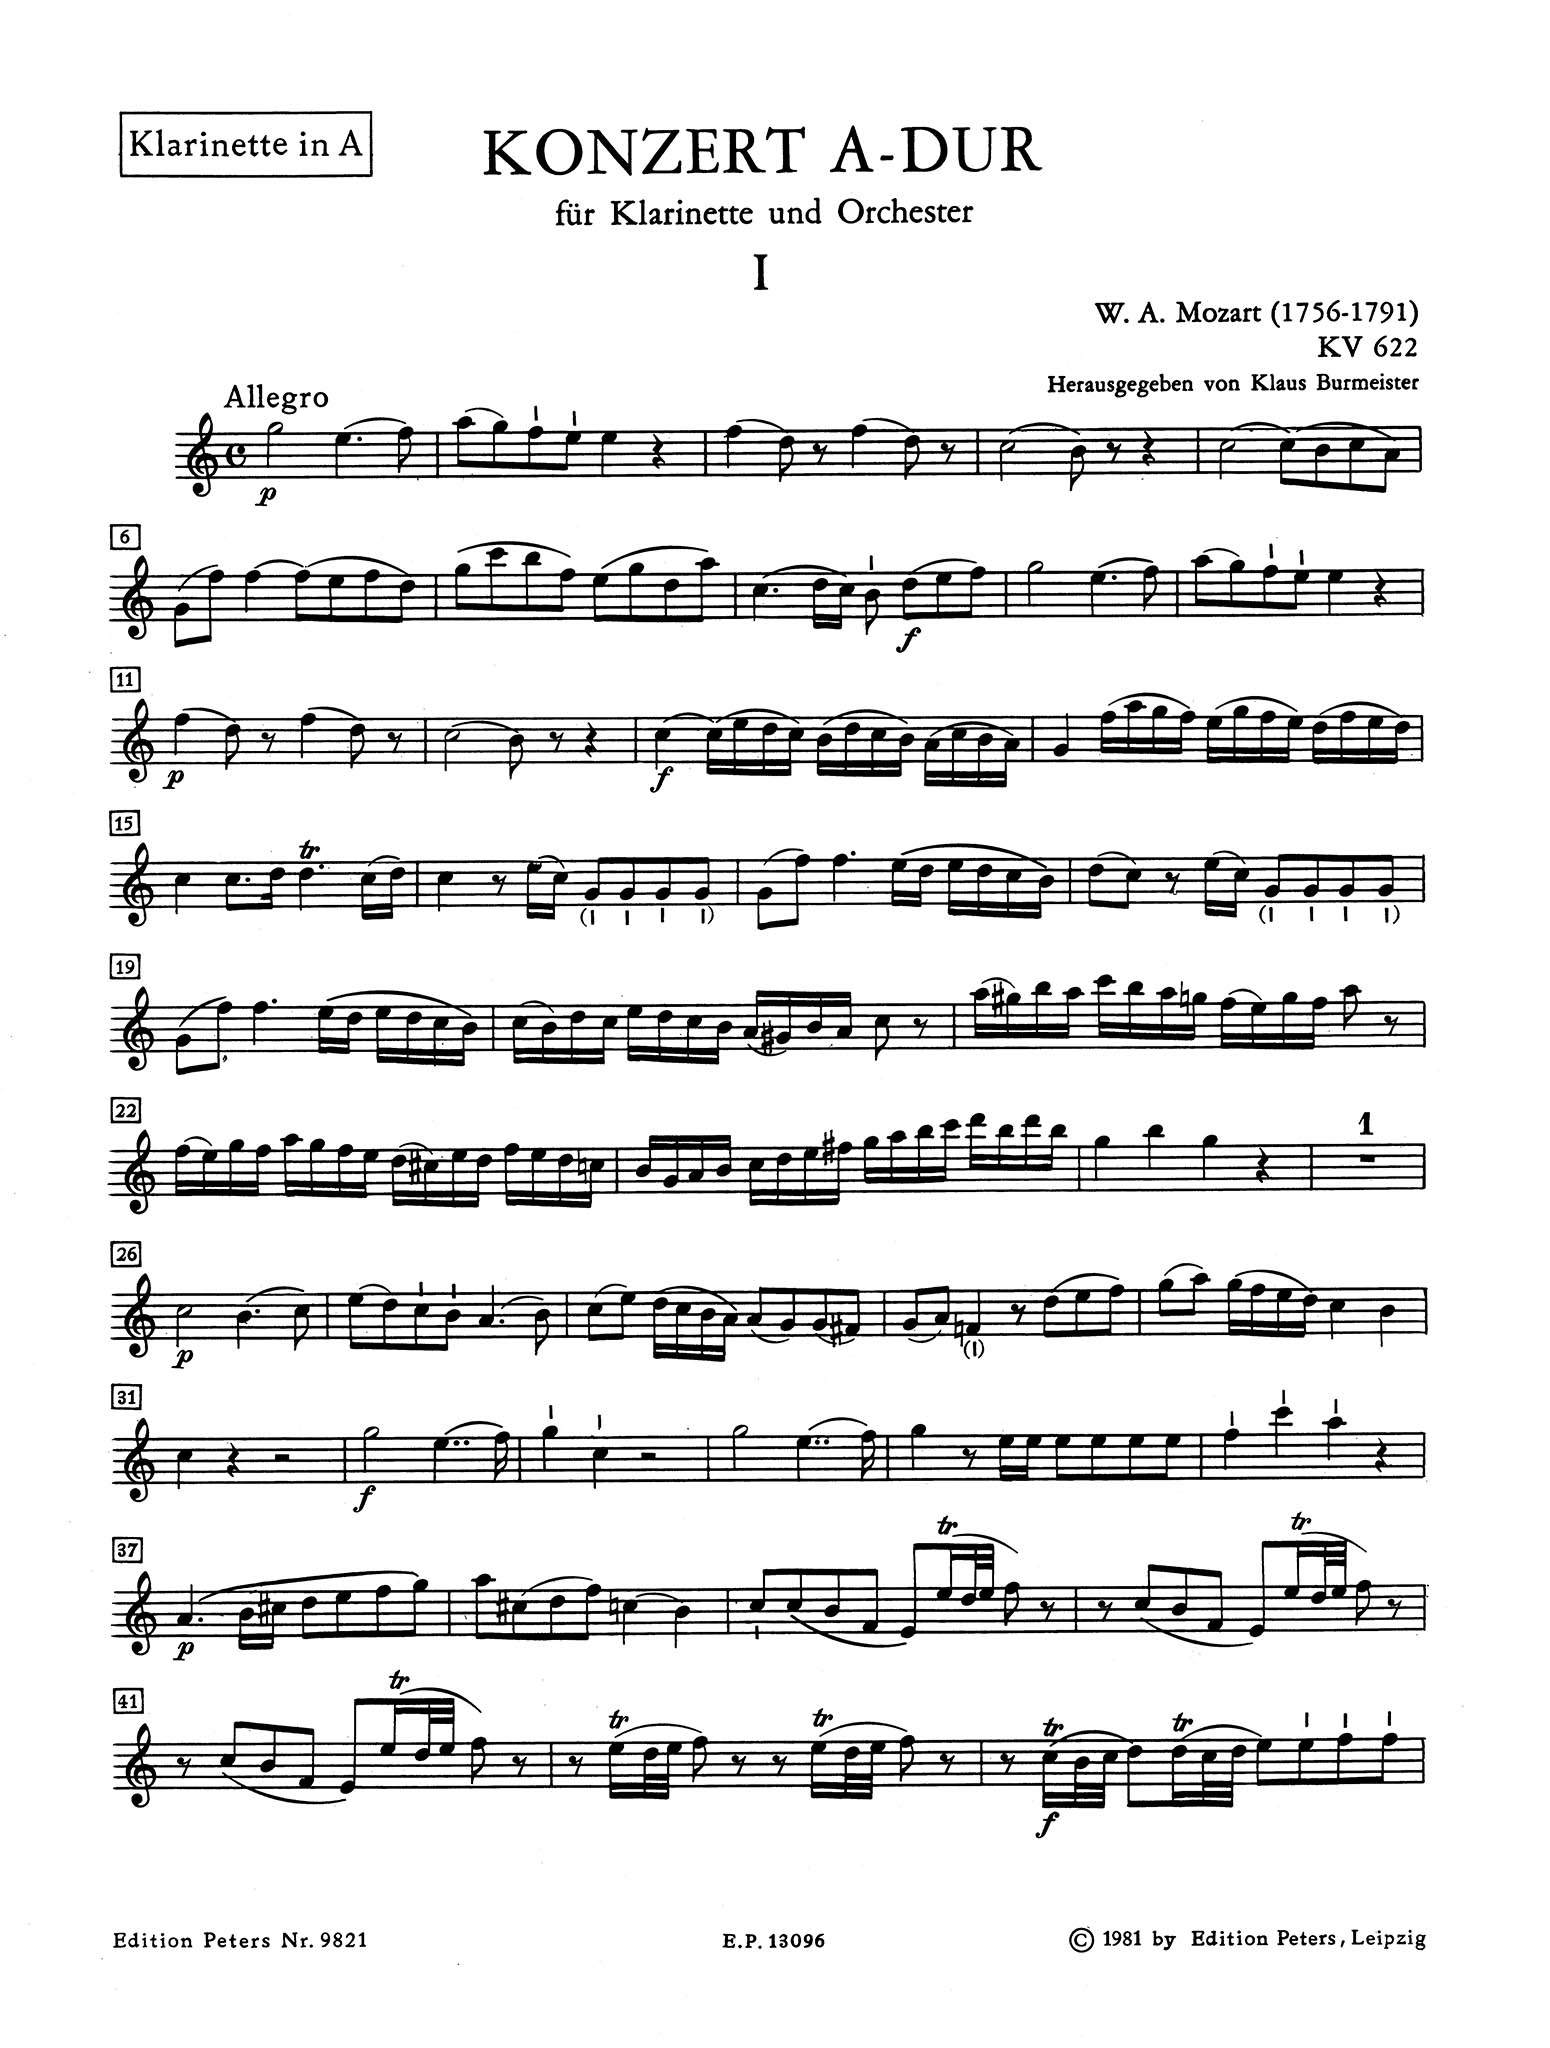 Clarinet Concerto in A Major, K. 622 Clarinet part